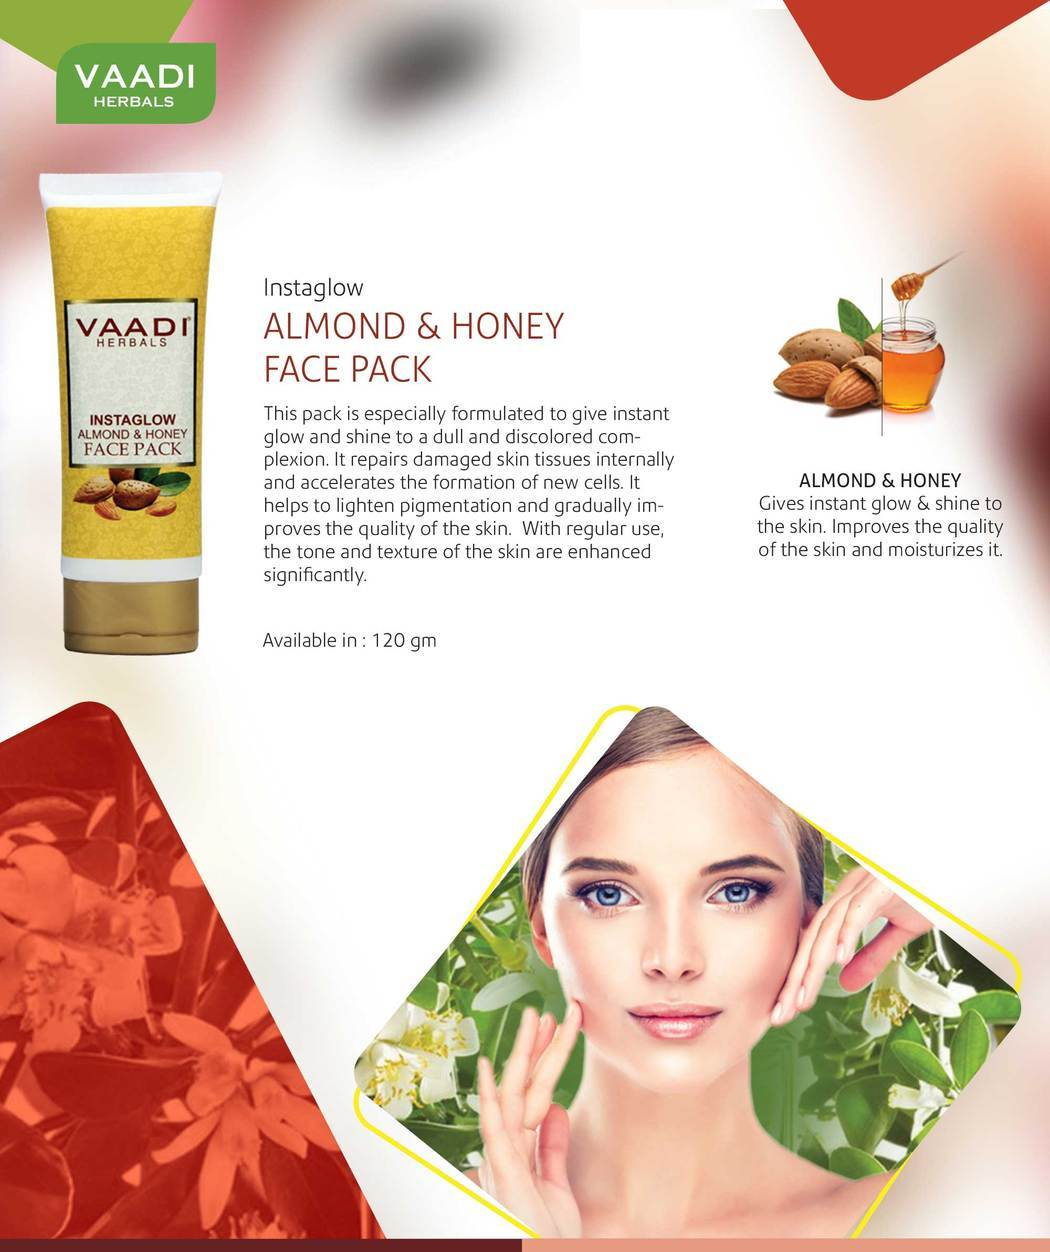 Organic InstaGlow Face Pack with Almond & Honey - Reduces Pigmentation - Gives Instant Glow (2 x 120 gms/ 4.3 oz)